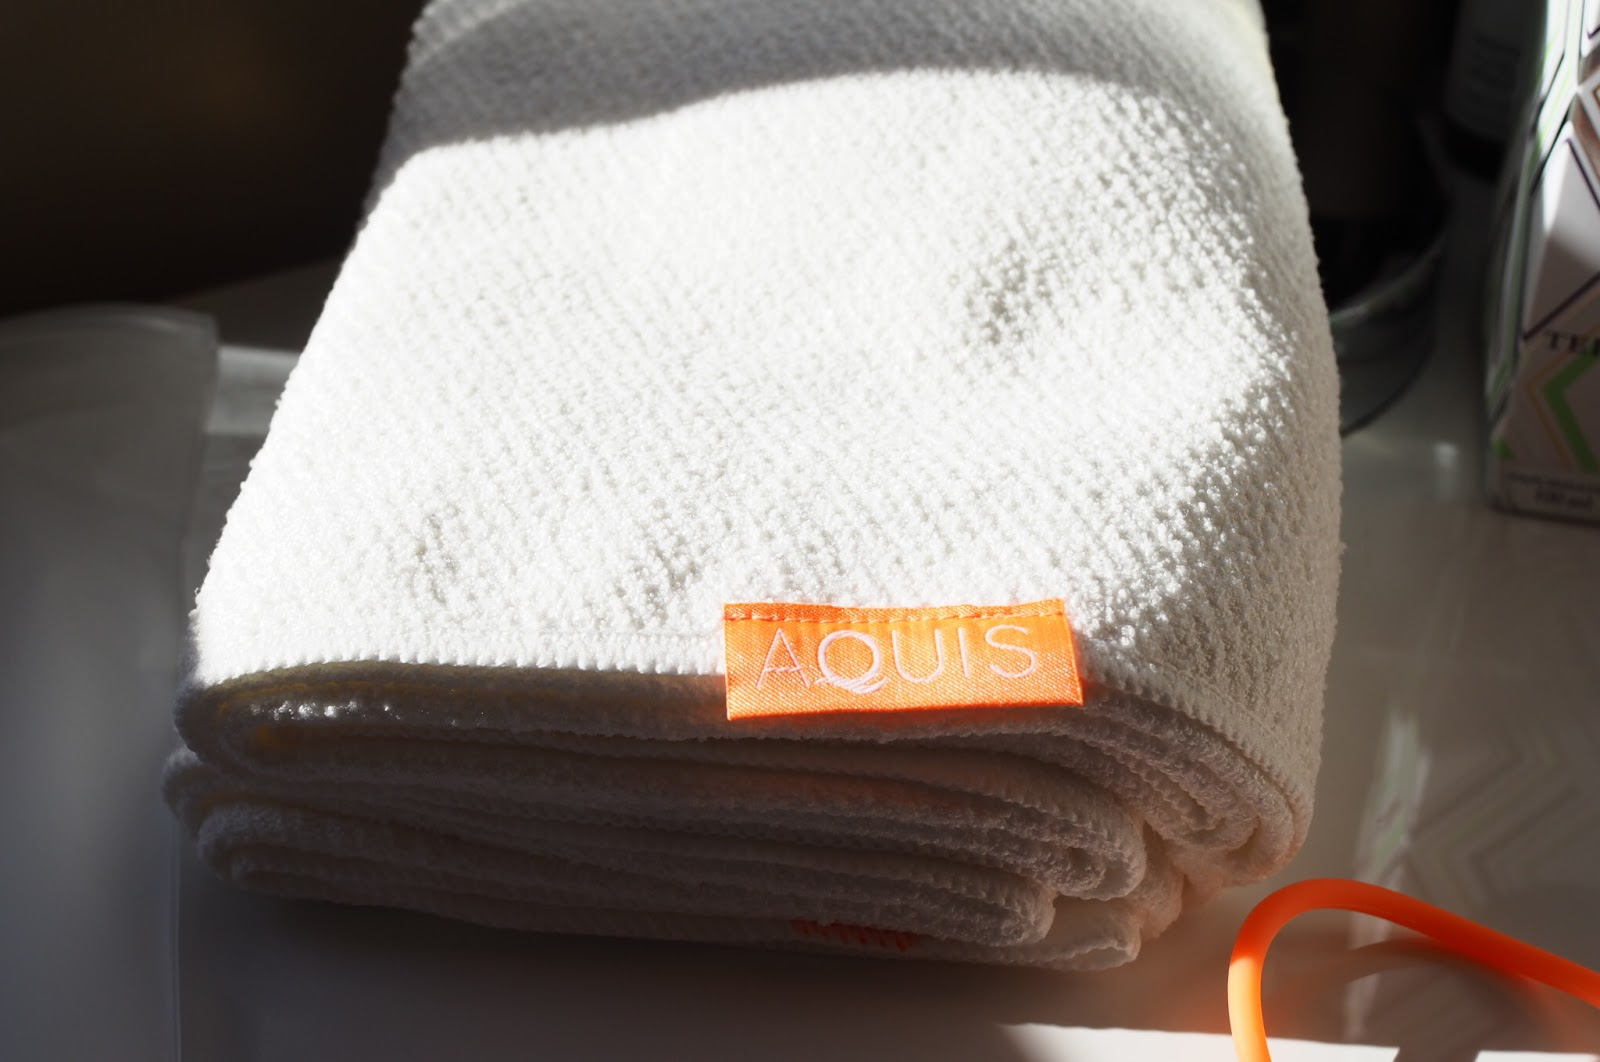 aquis lisse luxe hair towel review